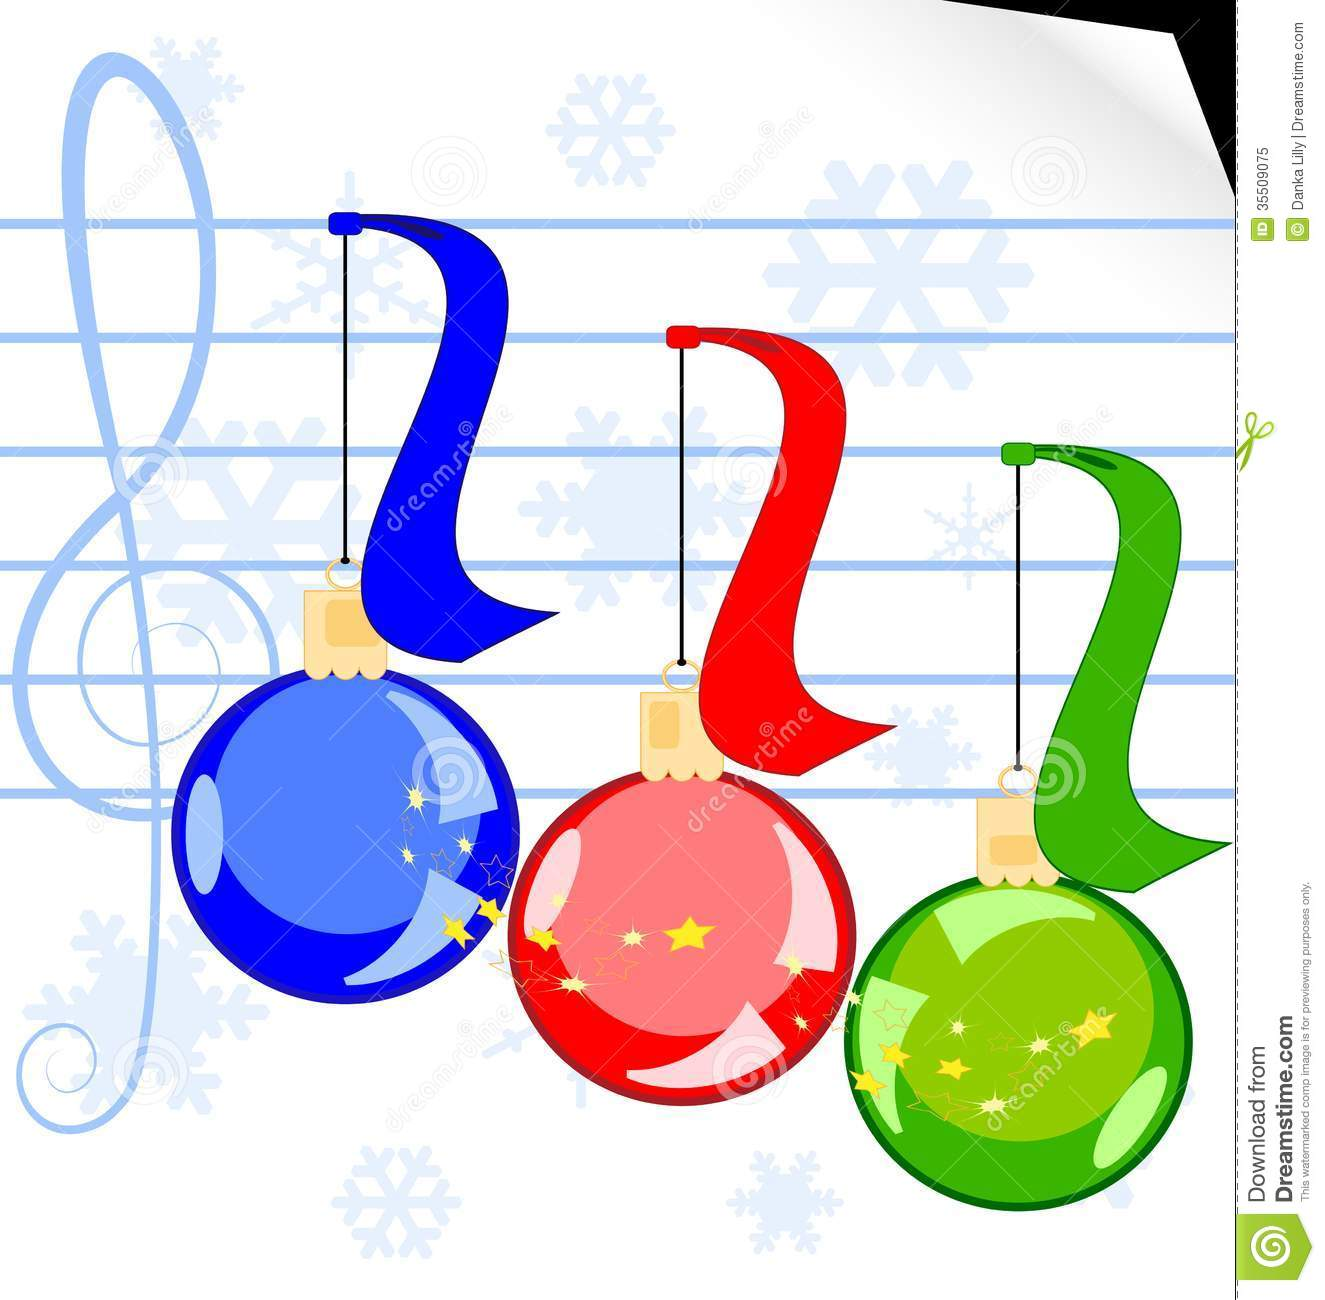 On a white sheet of music paper there are a three Christmas balls.